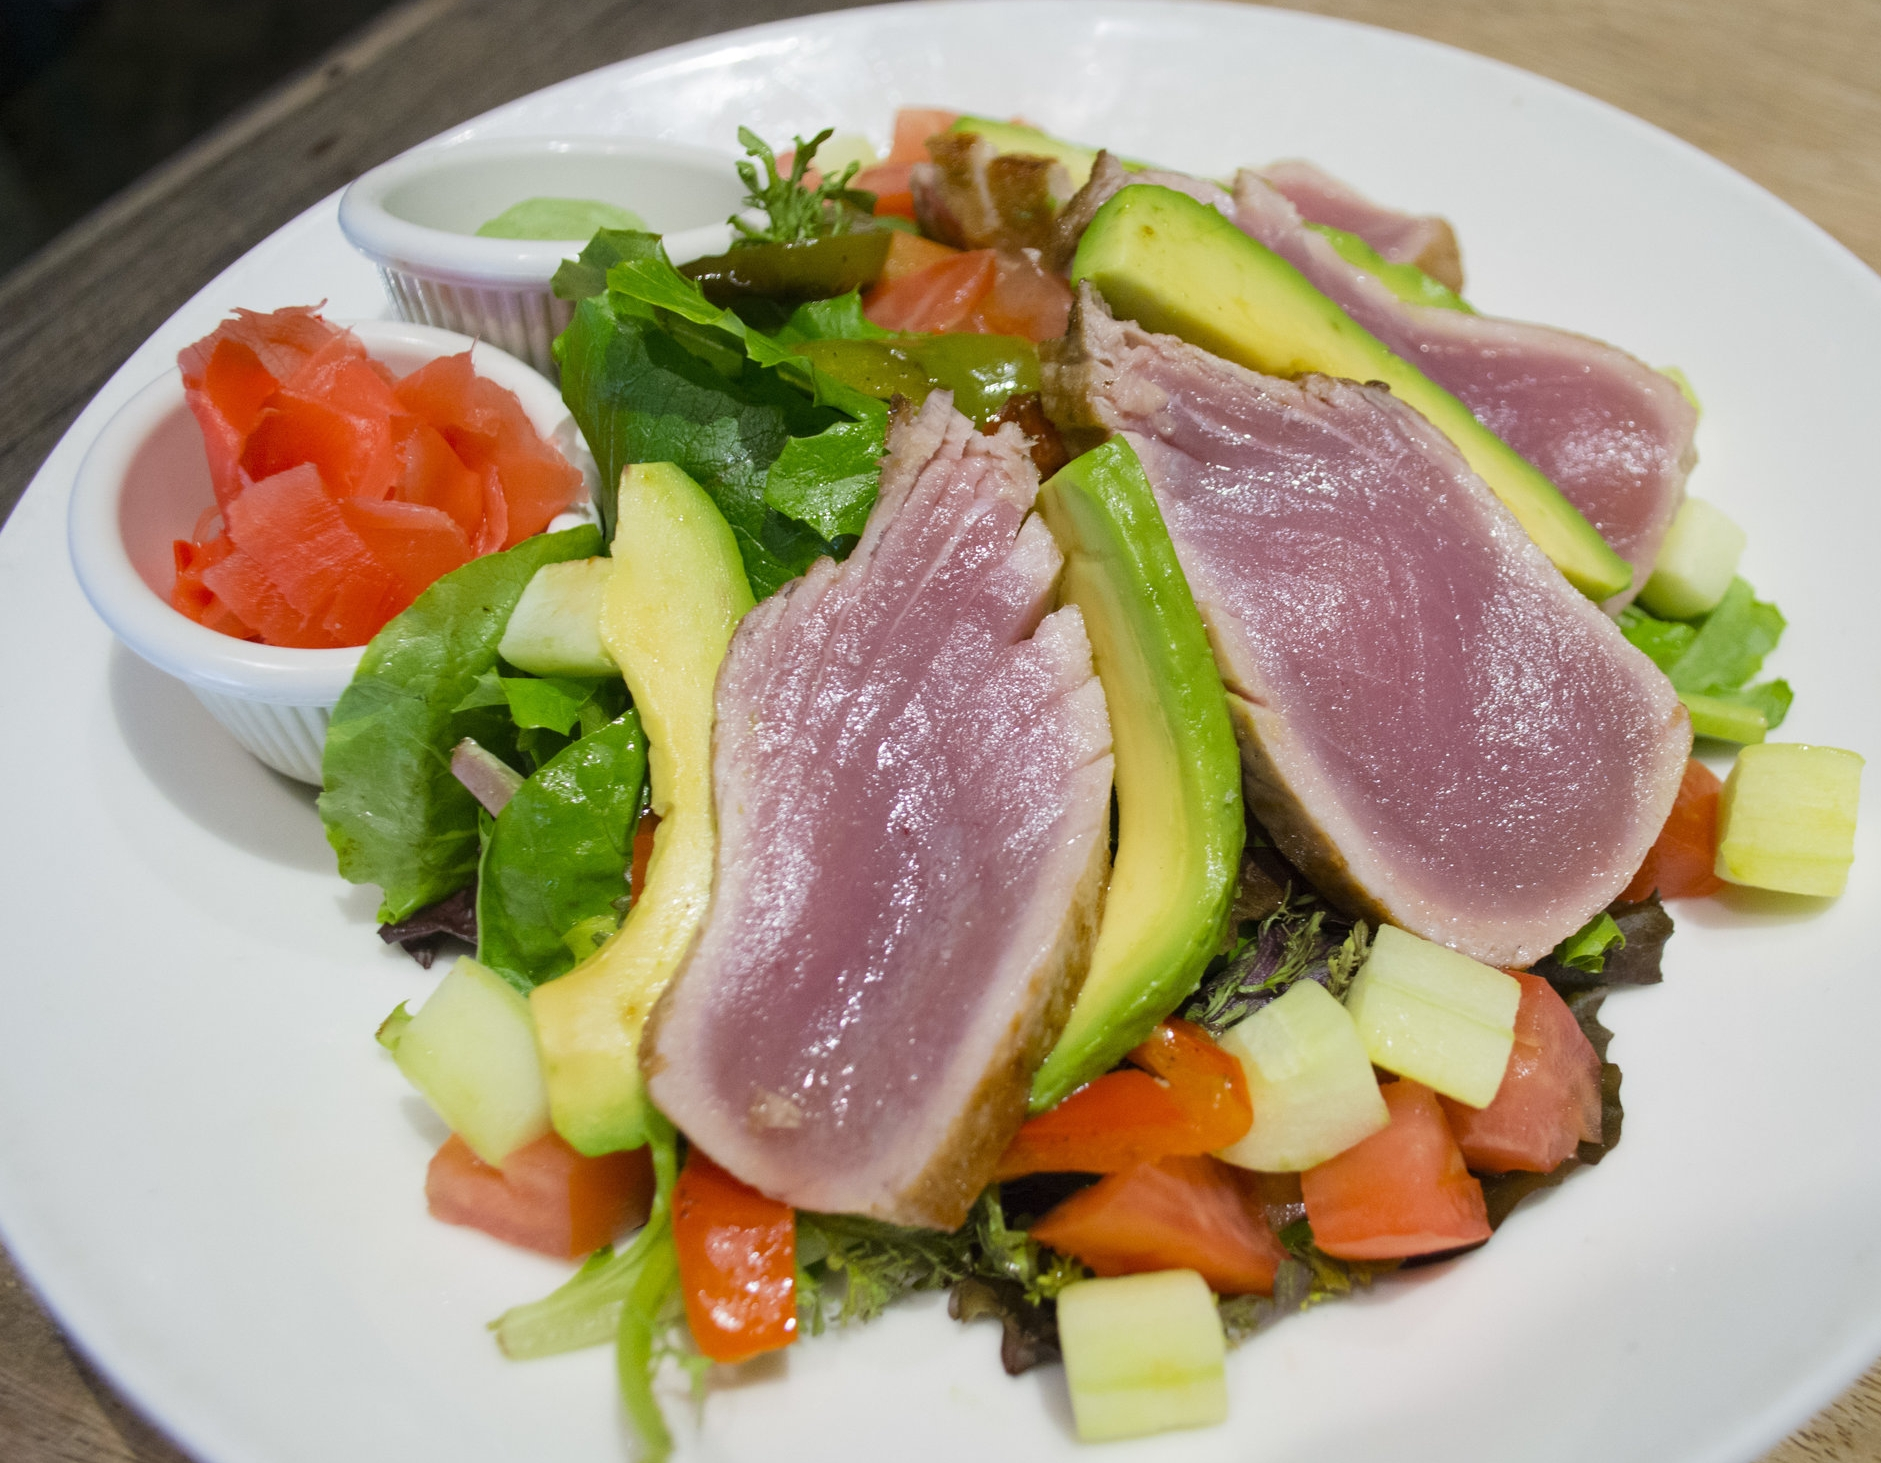 Long Islander News photo/Andrew Wroblewski  he Ahi Tuna Salad is one of several entree options on both the brunch and lunch $23 price-fixe menus at Mac's Steakhouse in Huntington village.